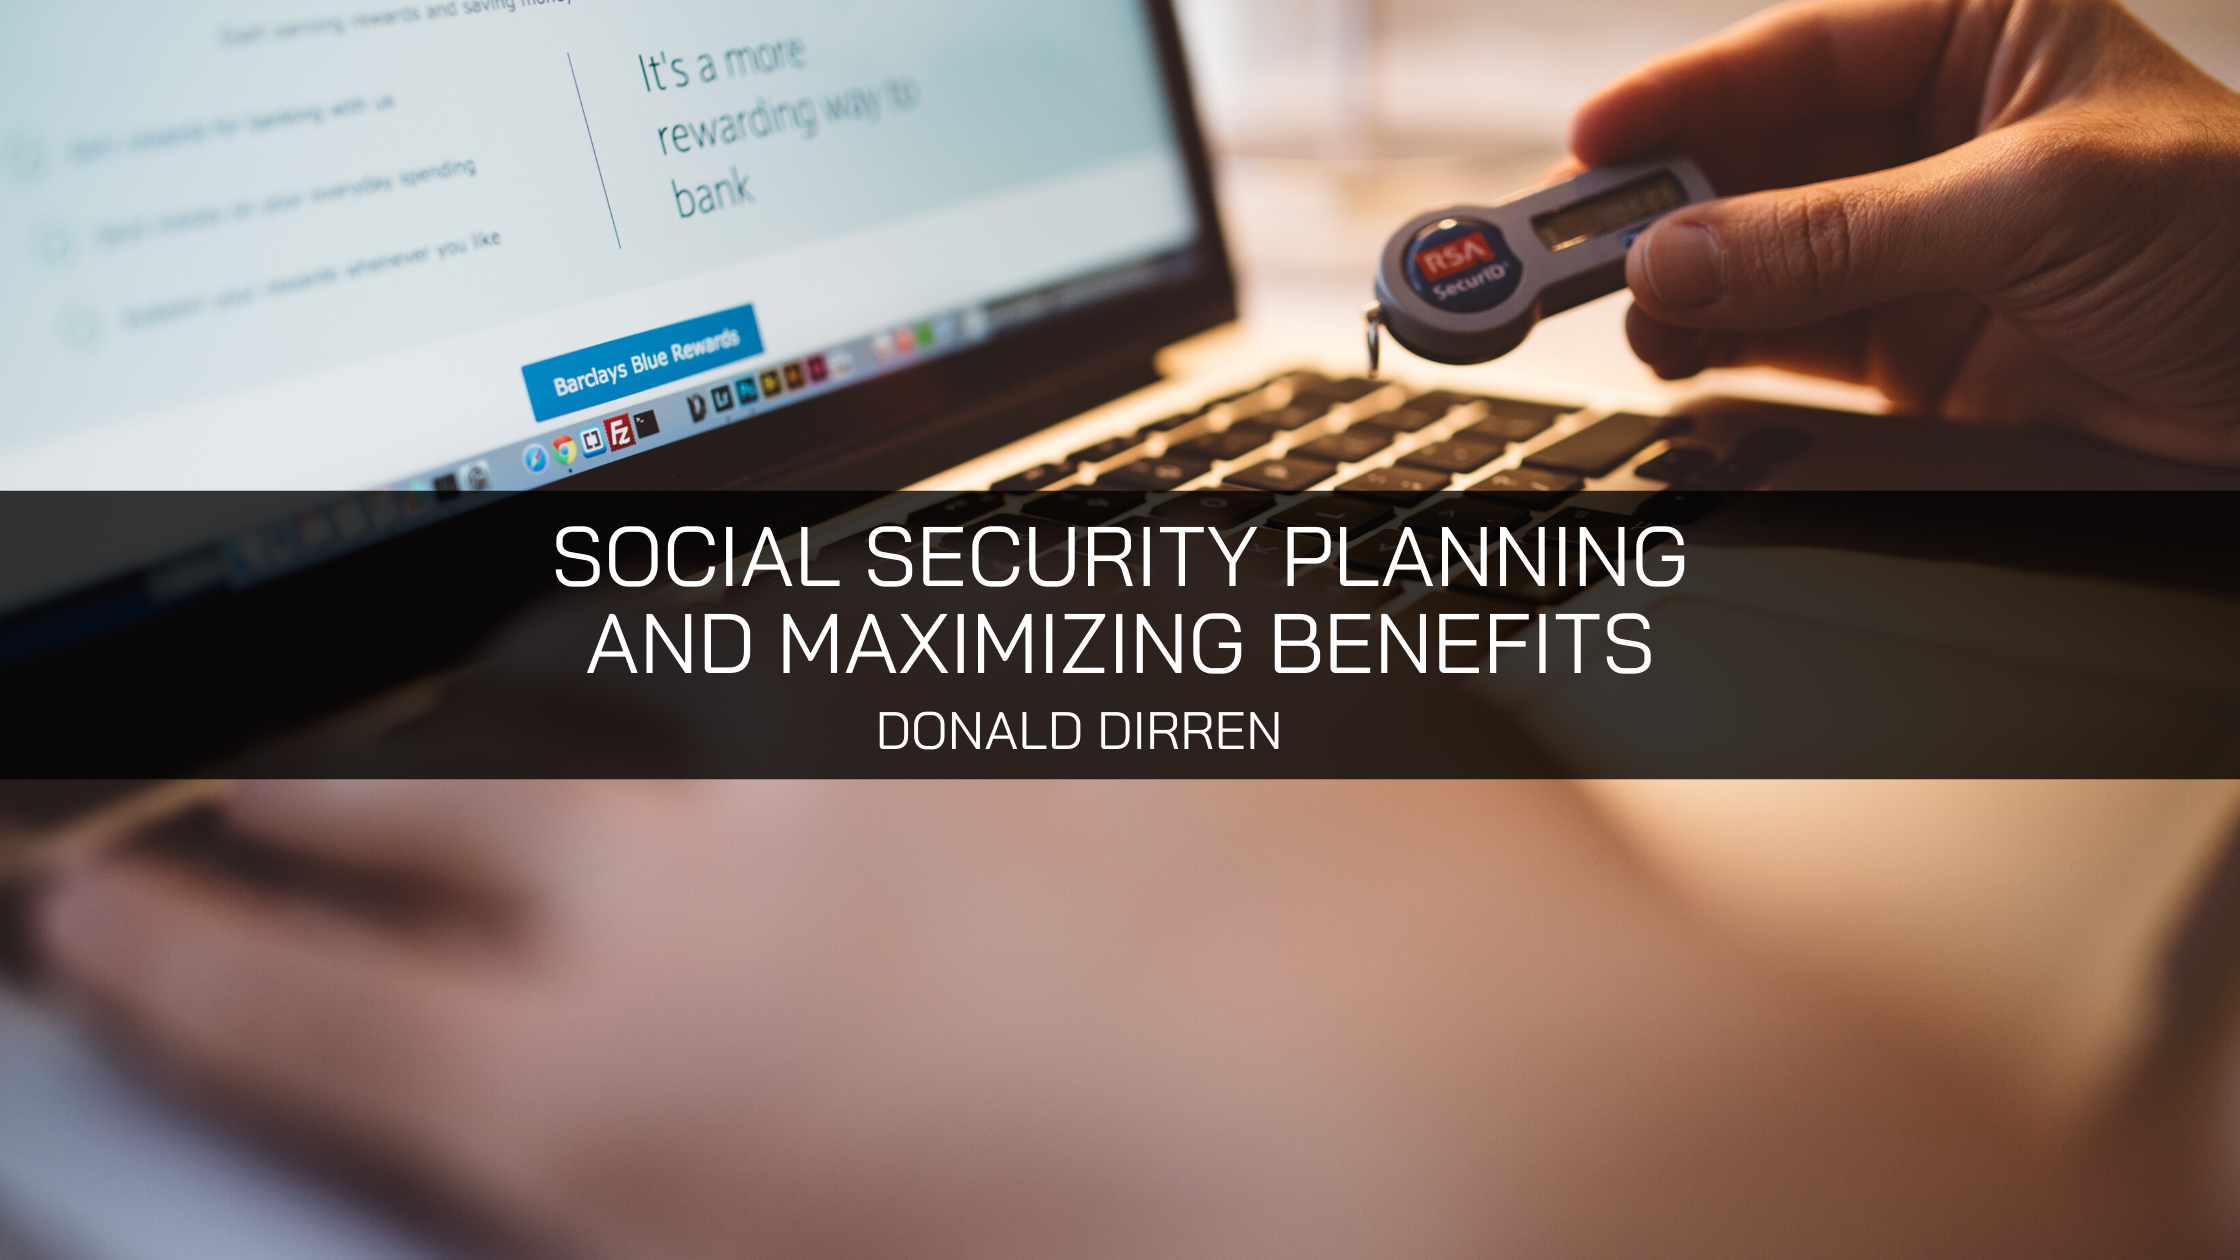 Donald Dirren Recaps Advice Surrounding Social Security Planning and Maximizing Benefits